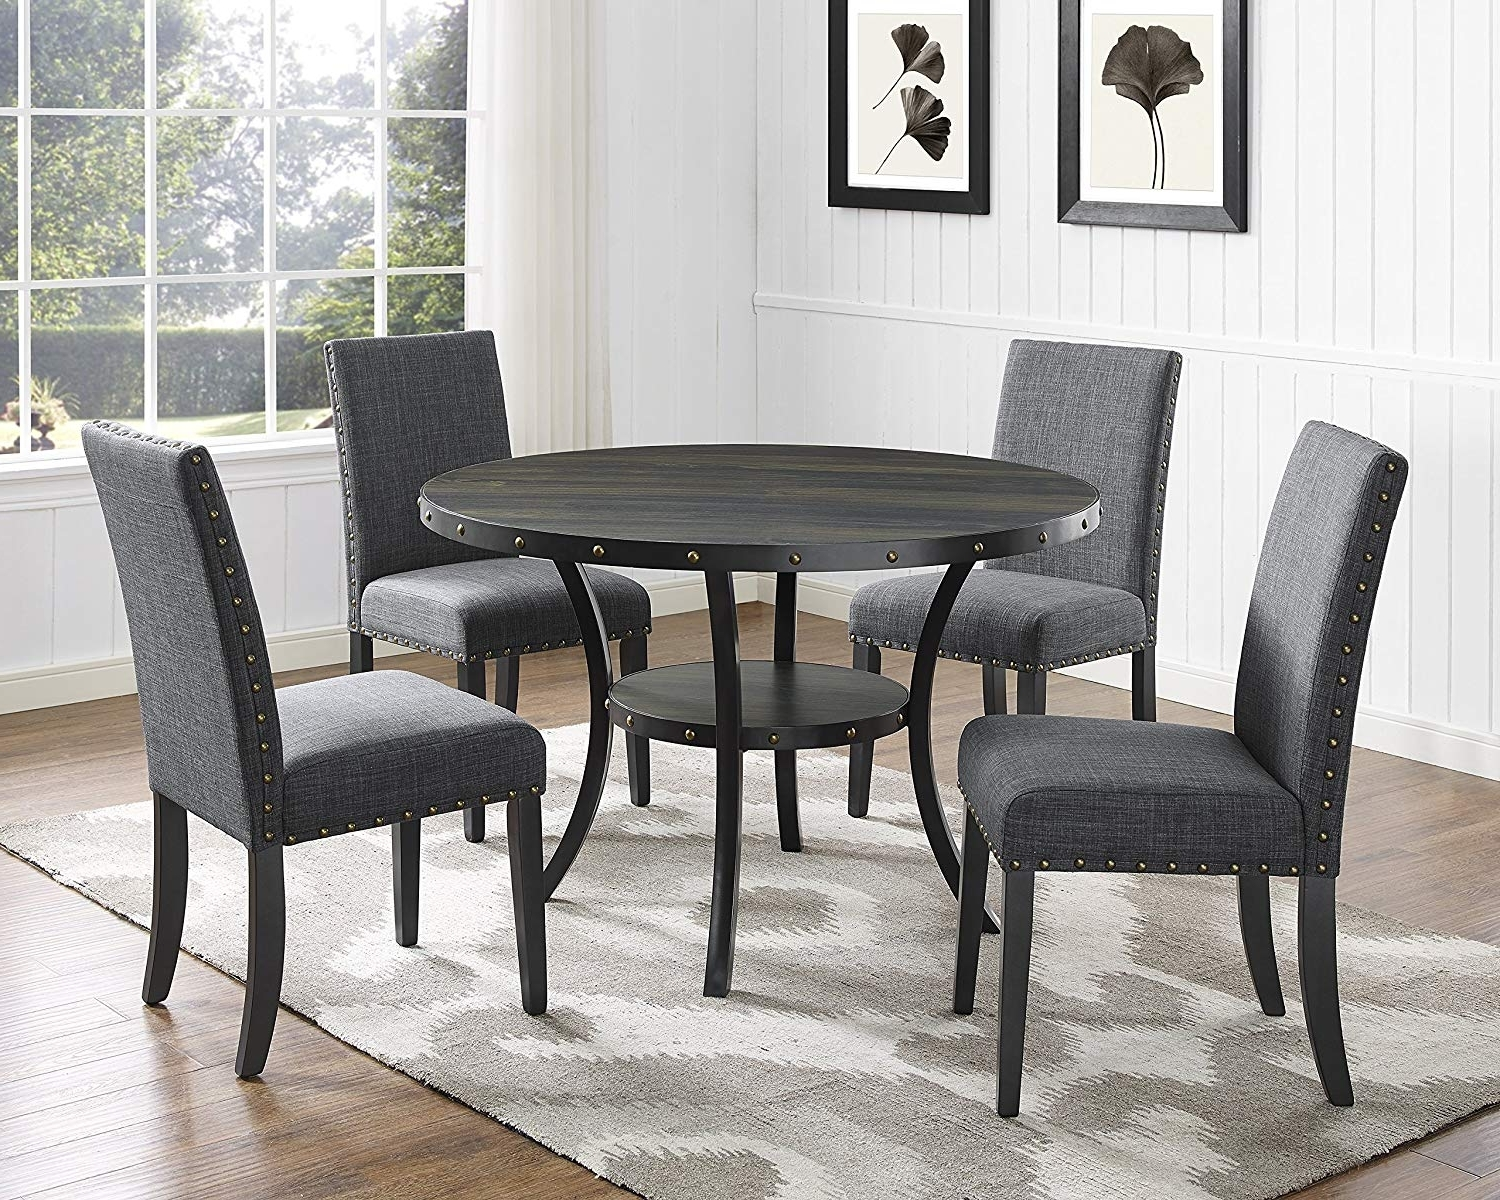 Amazon – Roundhill Furniture D162Gy Collection Biony Espresso Within Current Laurent 7 Piece Rectangle Dining Sets With Wood Chairs (View 6 of 25)